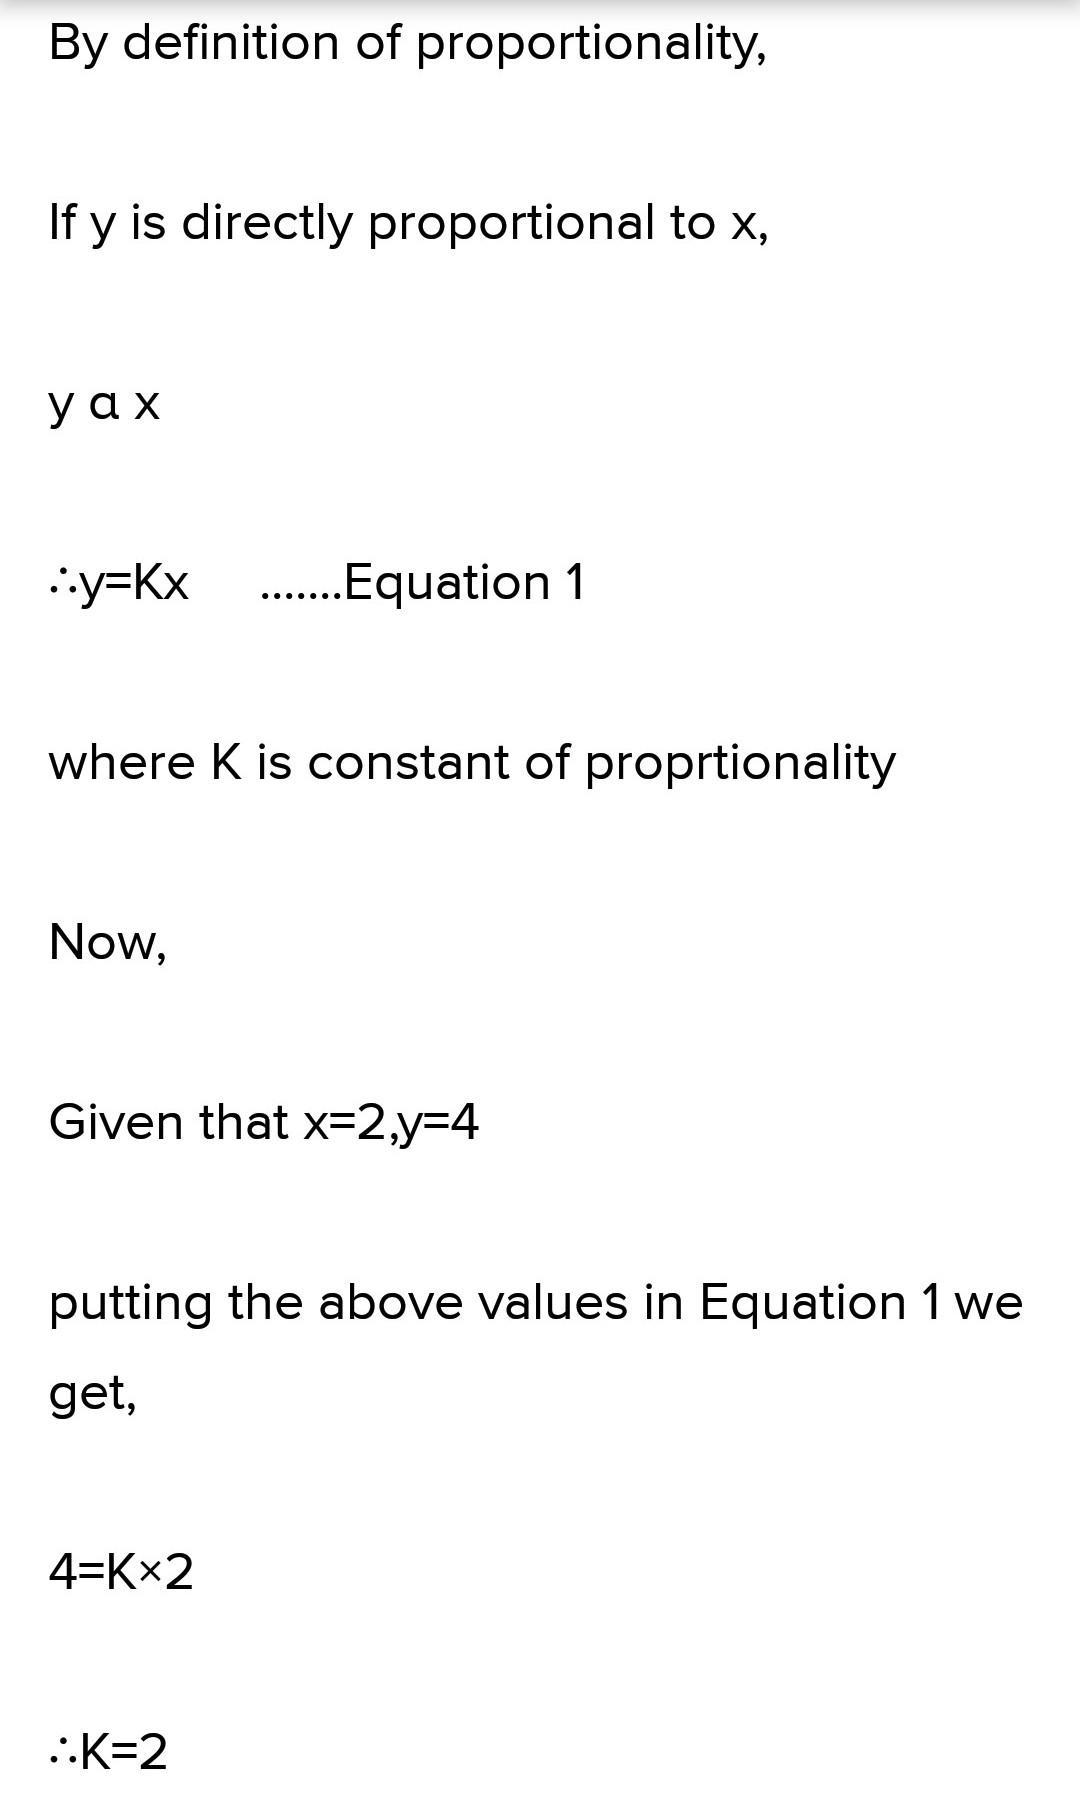 If Y Is directly Proportional To (x + y) and Y = 32.4 When